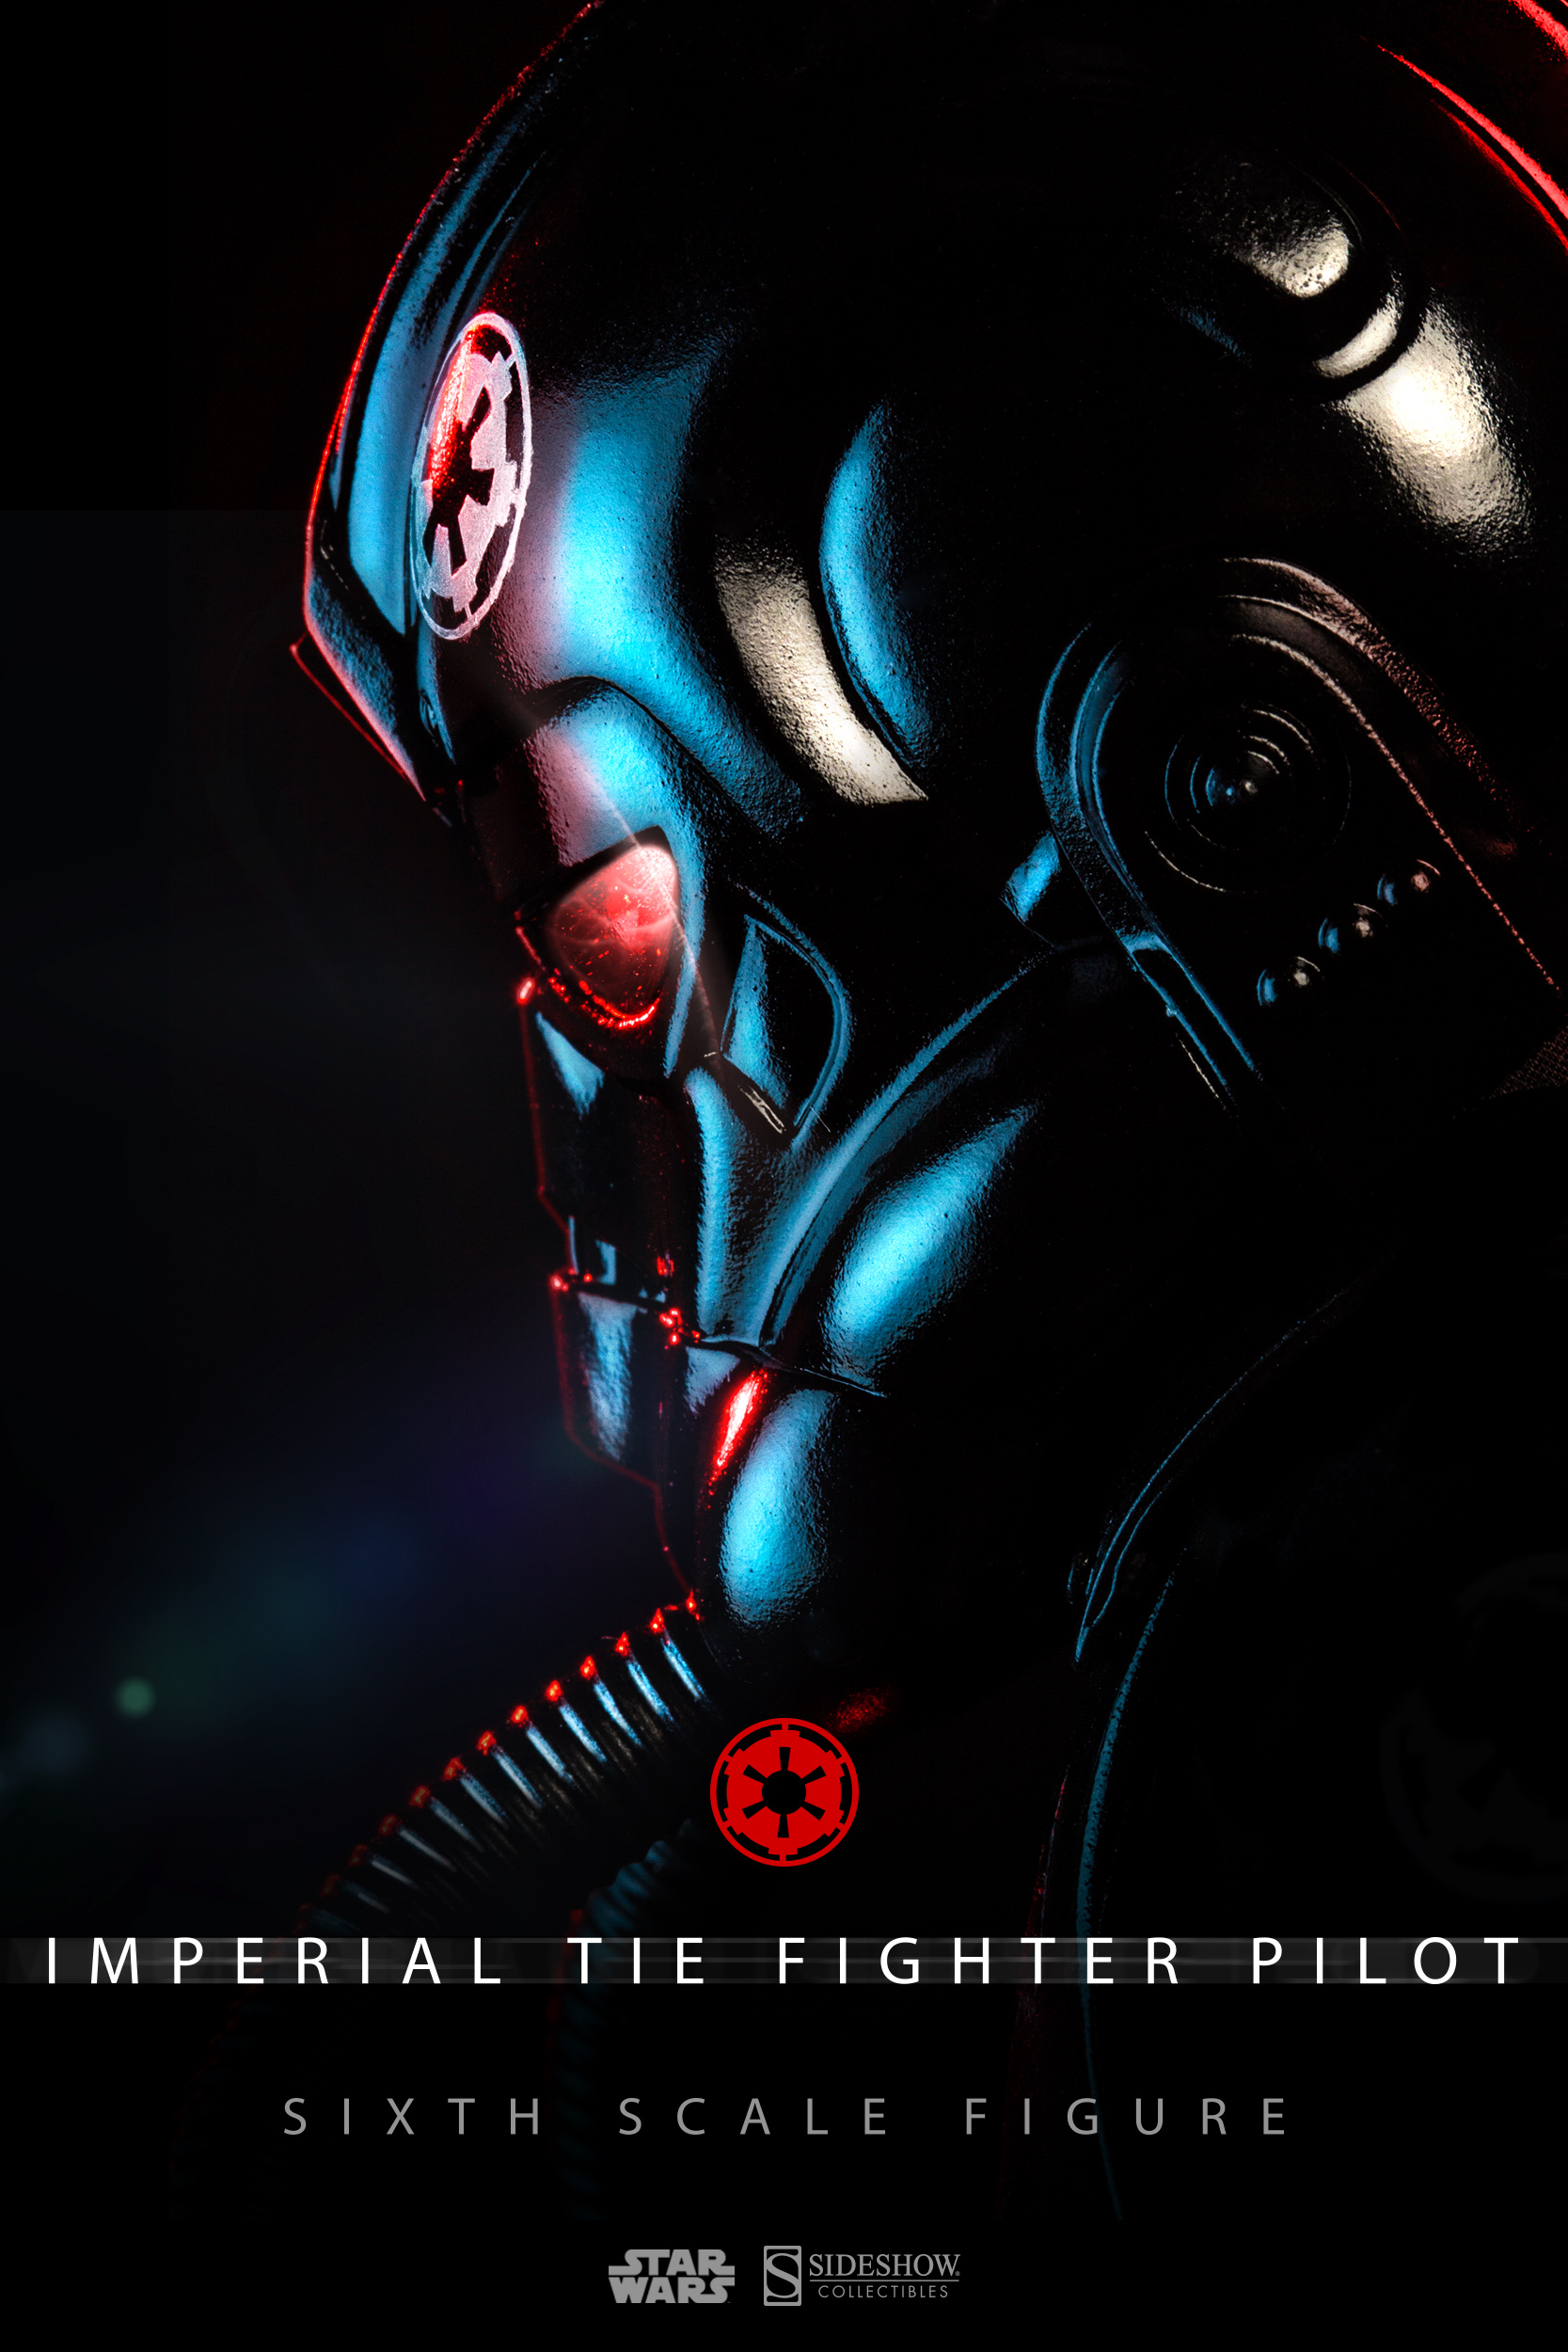 Darth Vaders Wing Man-I Have You Now-Sideshow Collectibles Releases Tie Fighter Pilot for PreOrder